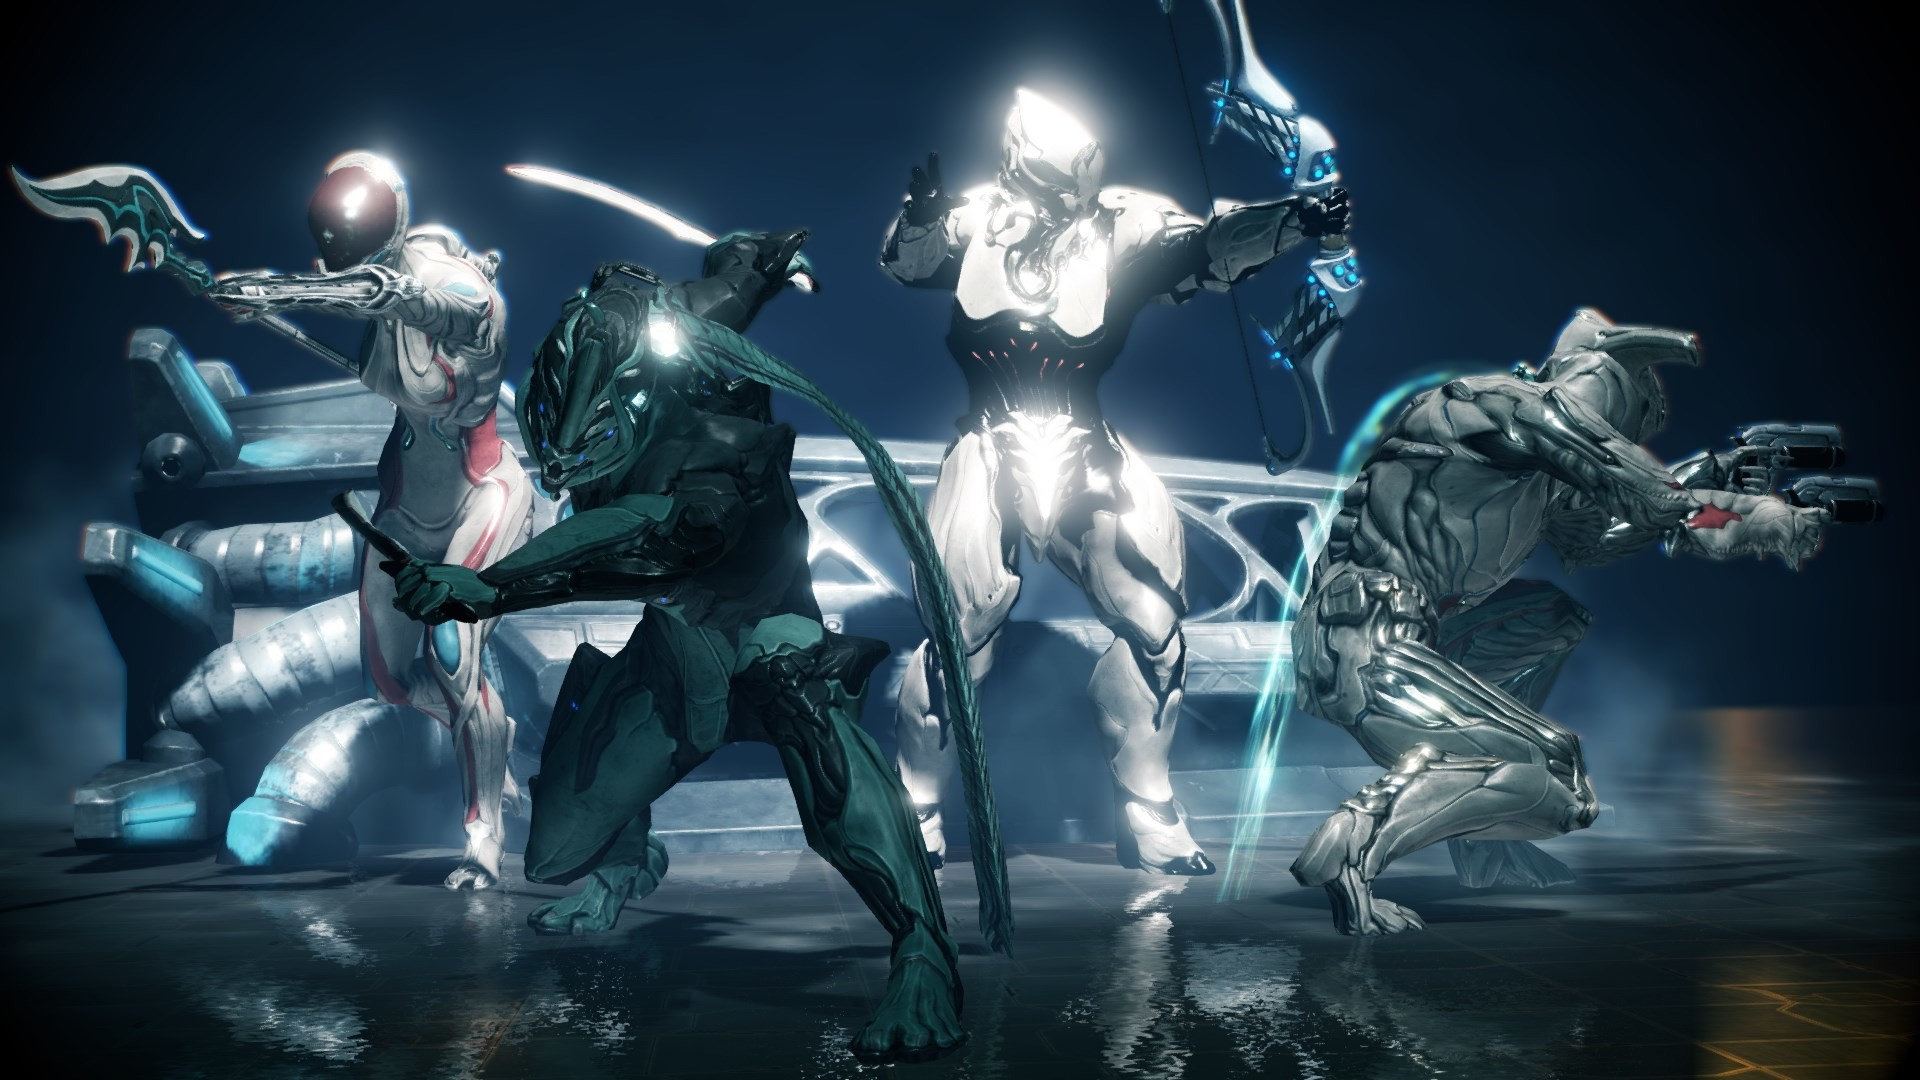 px Cool Warframe wallpaper by Linch Peacock for : TrunkWeed